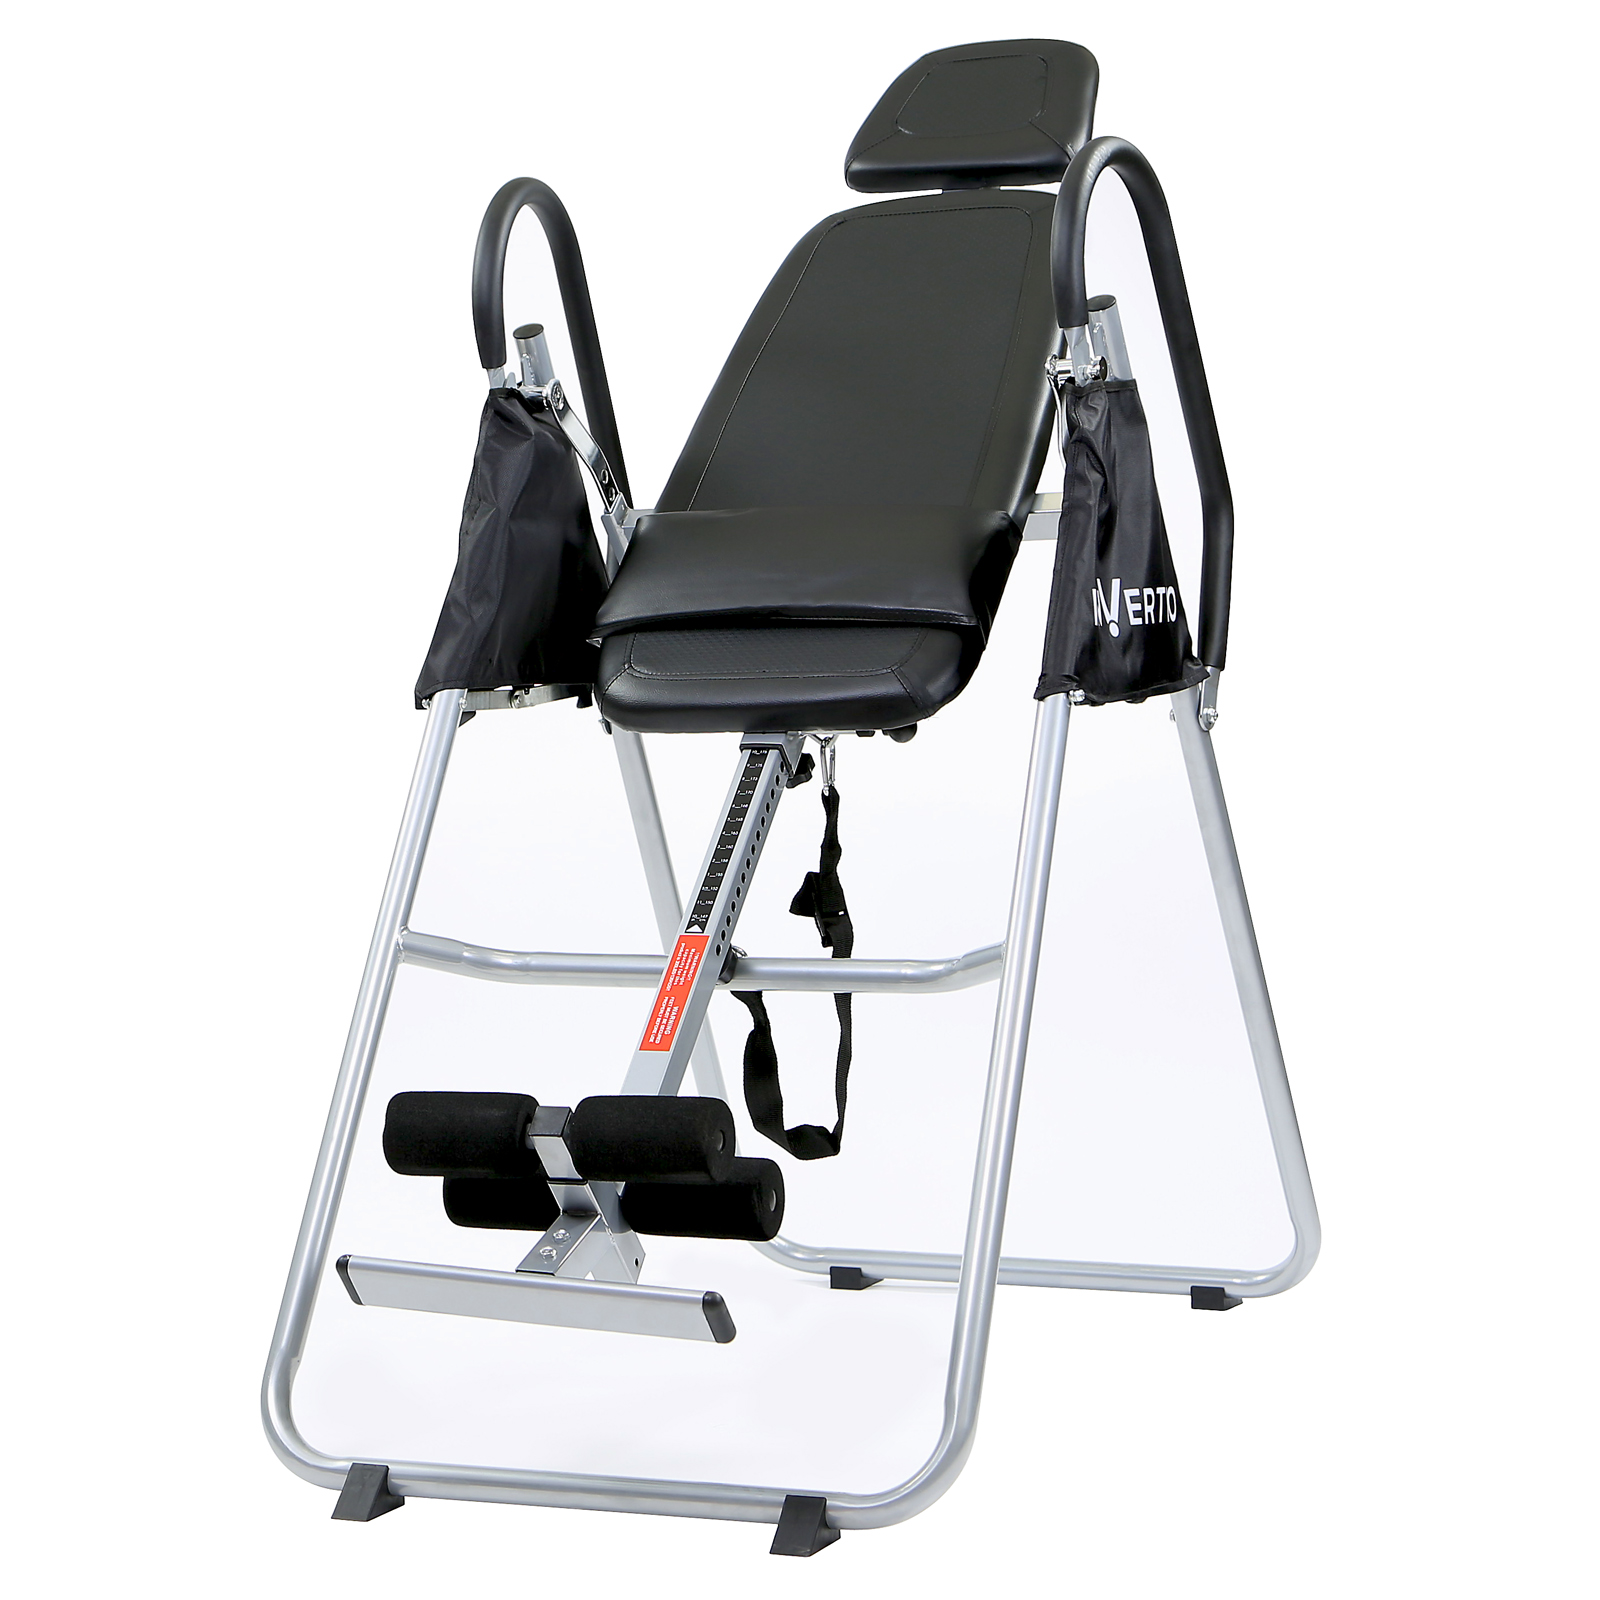 Invertio folding inversion table back fitness therapy for Table inversion